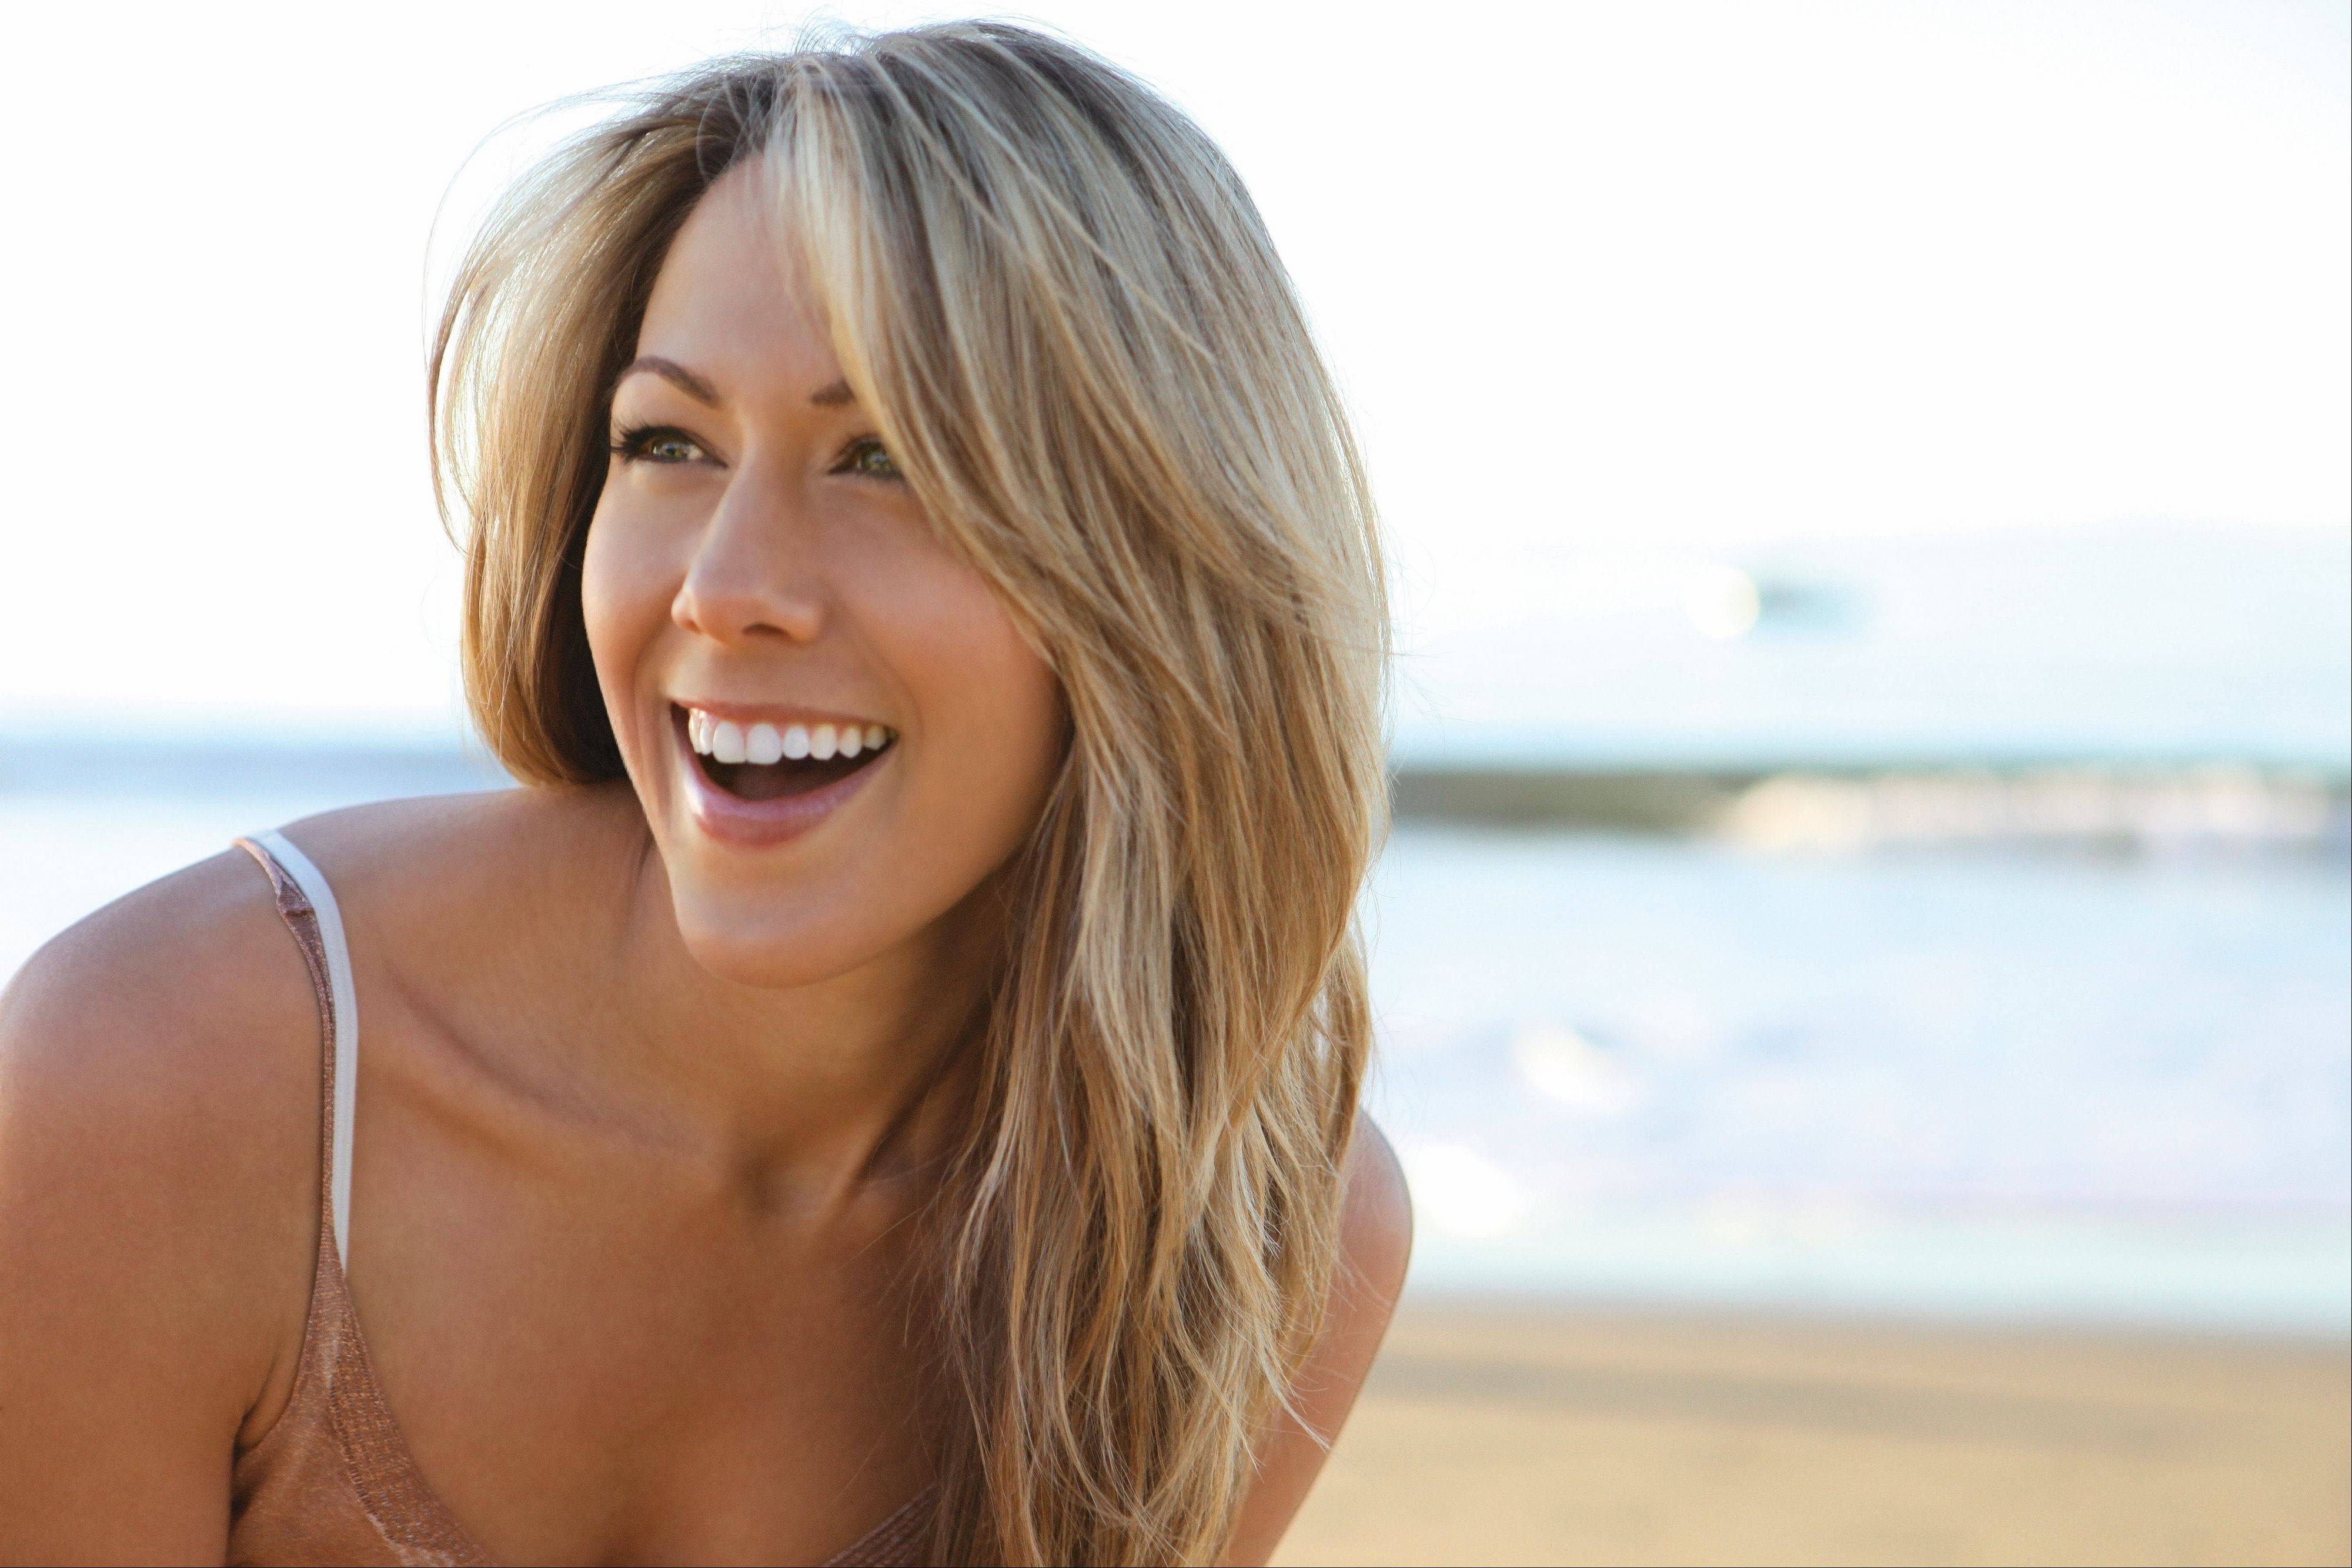 Colbie Caillat is set to perform a solo acoustic show at North Central College's Wentz Concert Hall in Naperville on Thursday, Nov. 10.